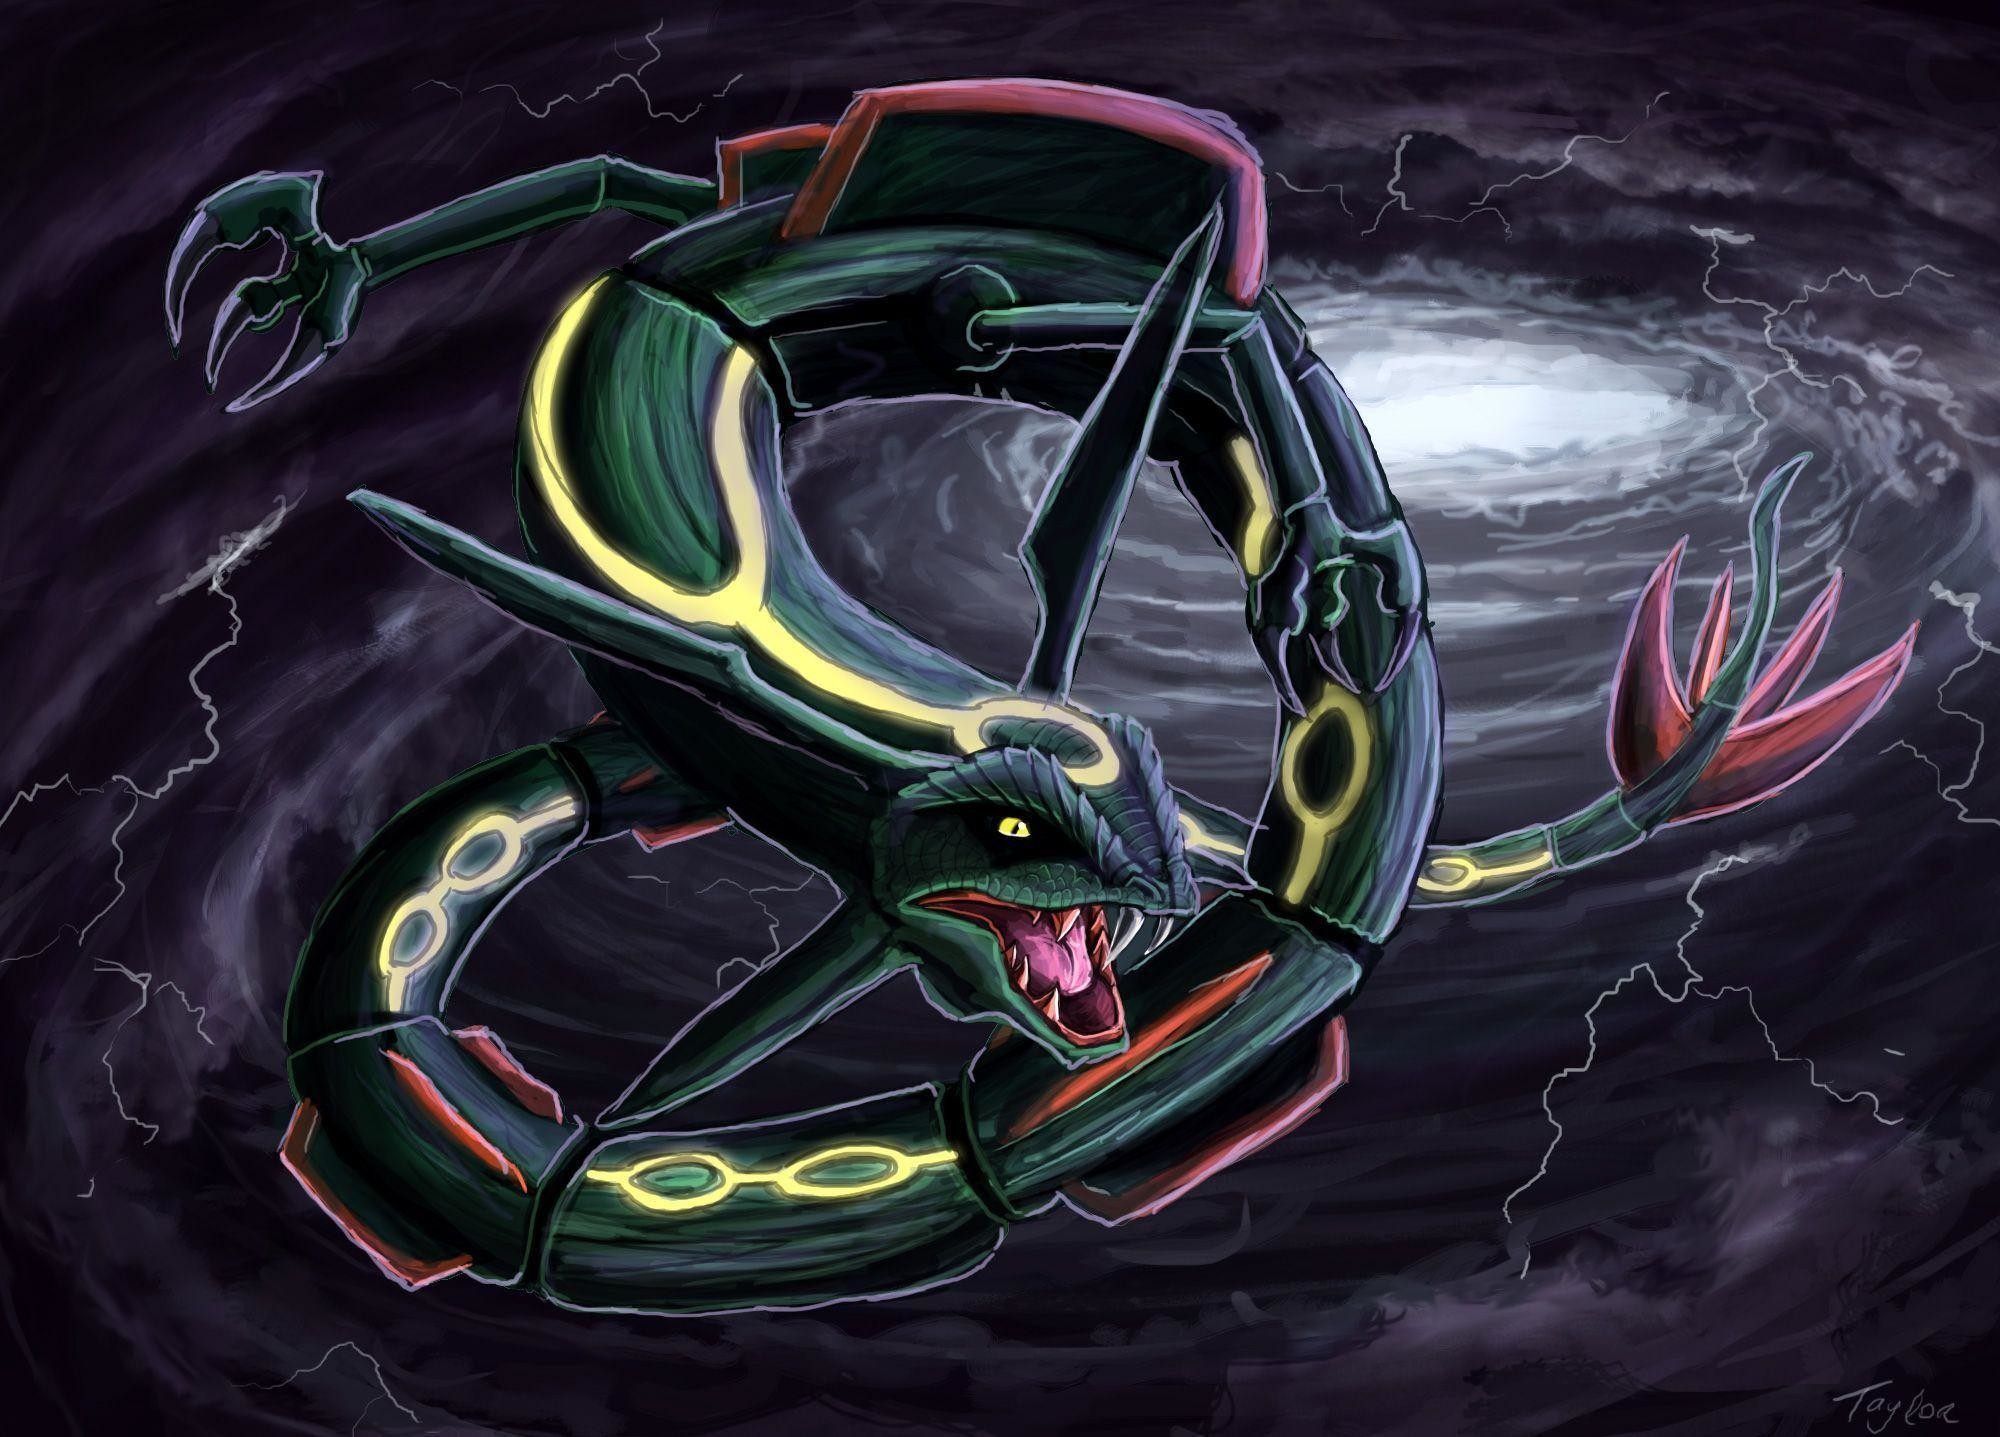 2000x1437 Pokemon Wallpaper Shiny Rayquaza - Viewing Gallery